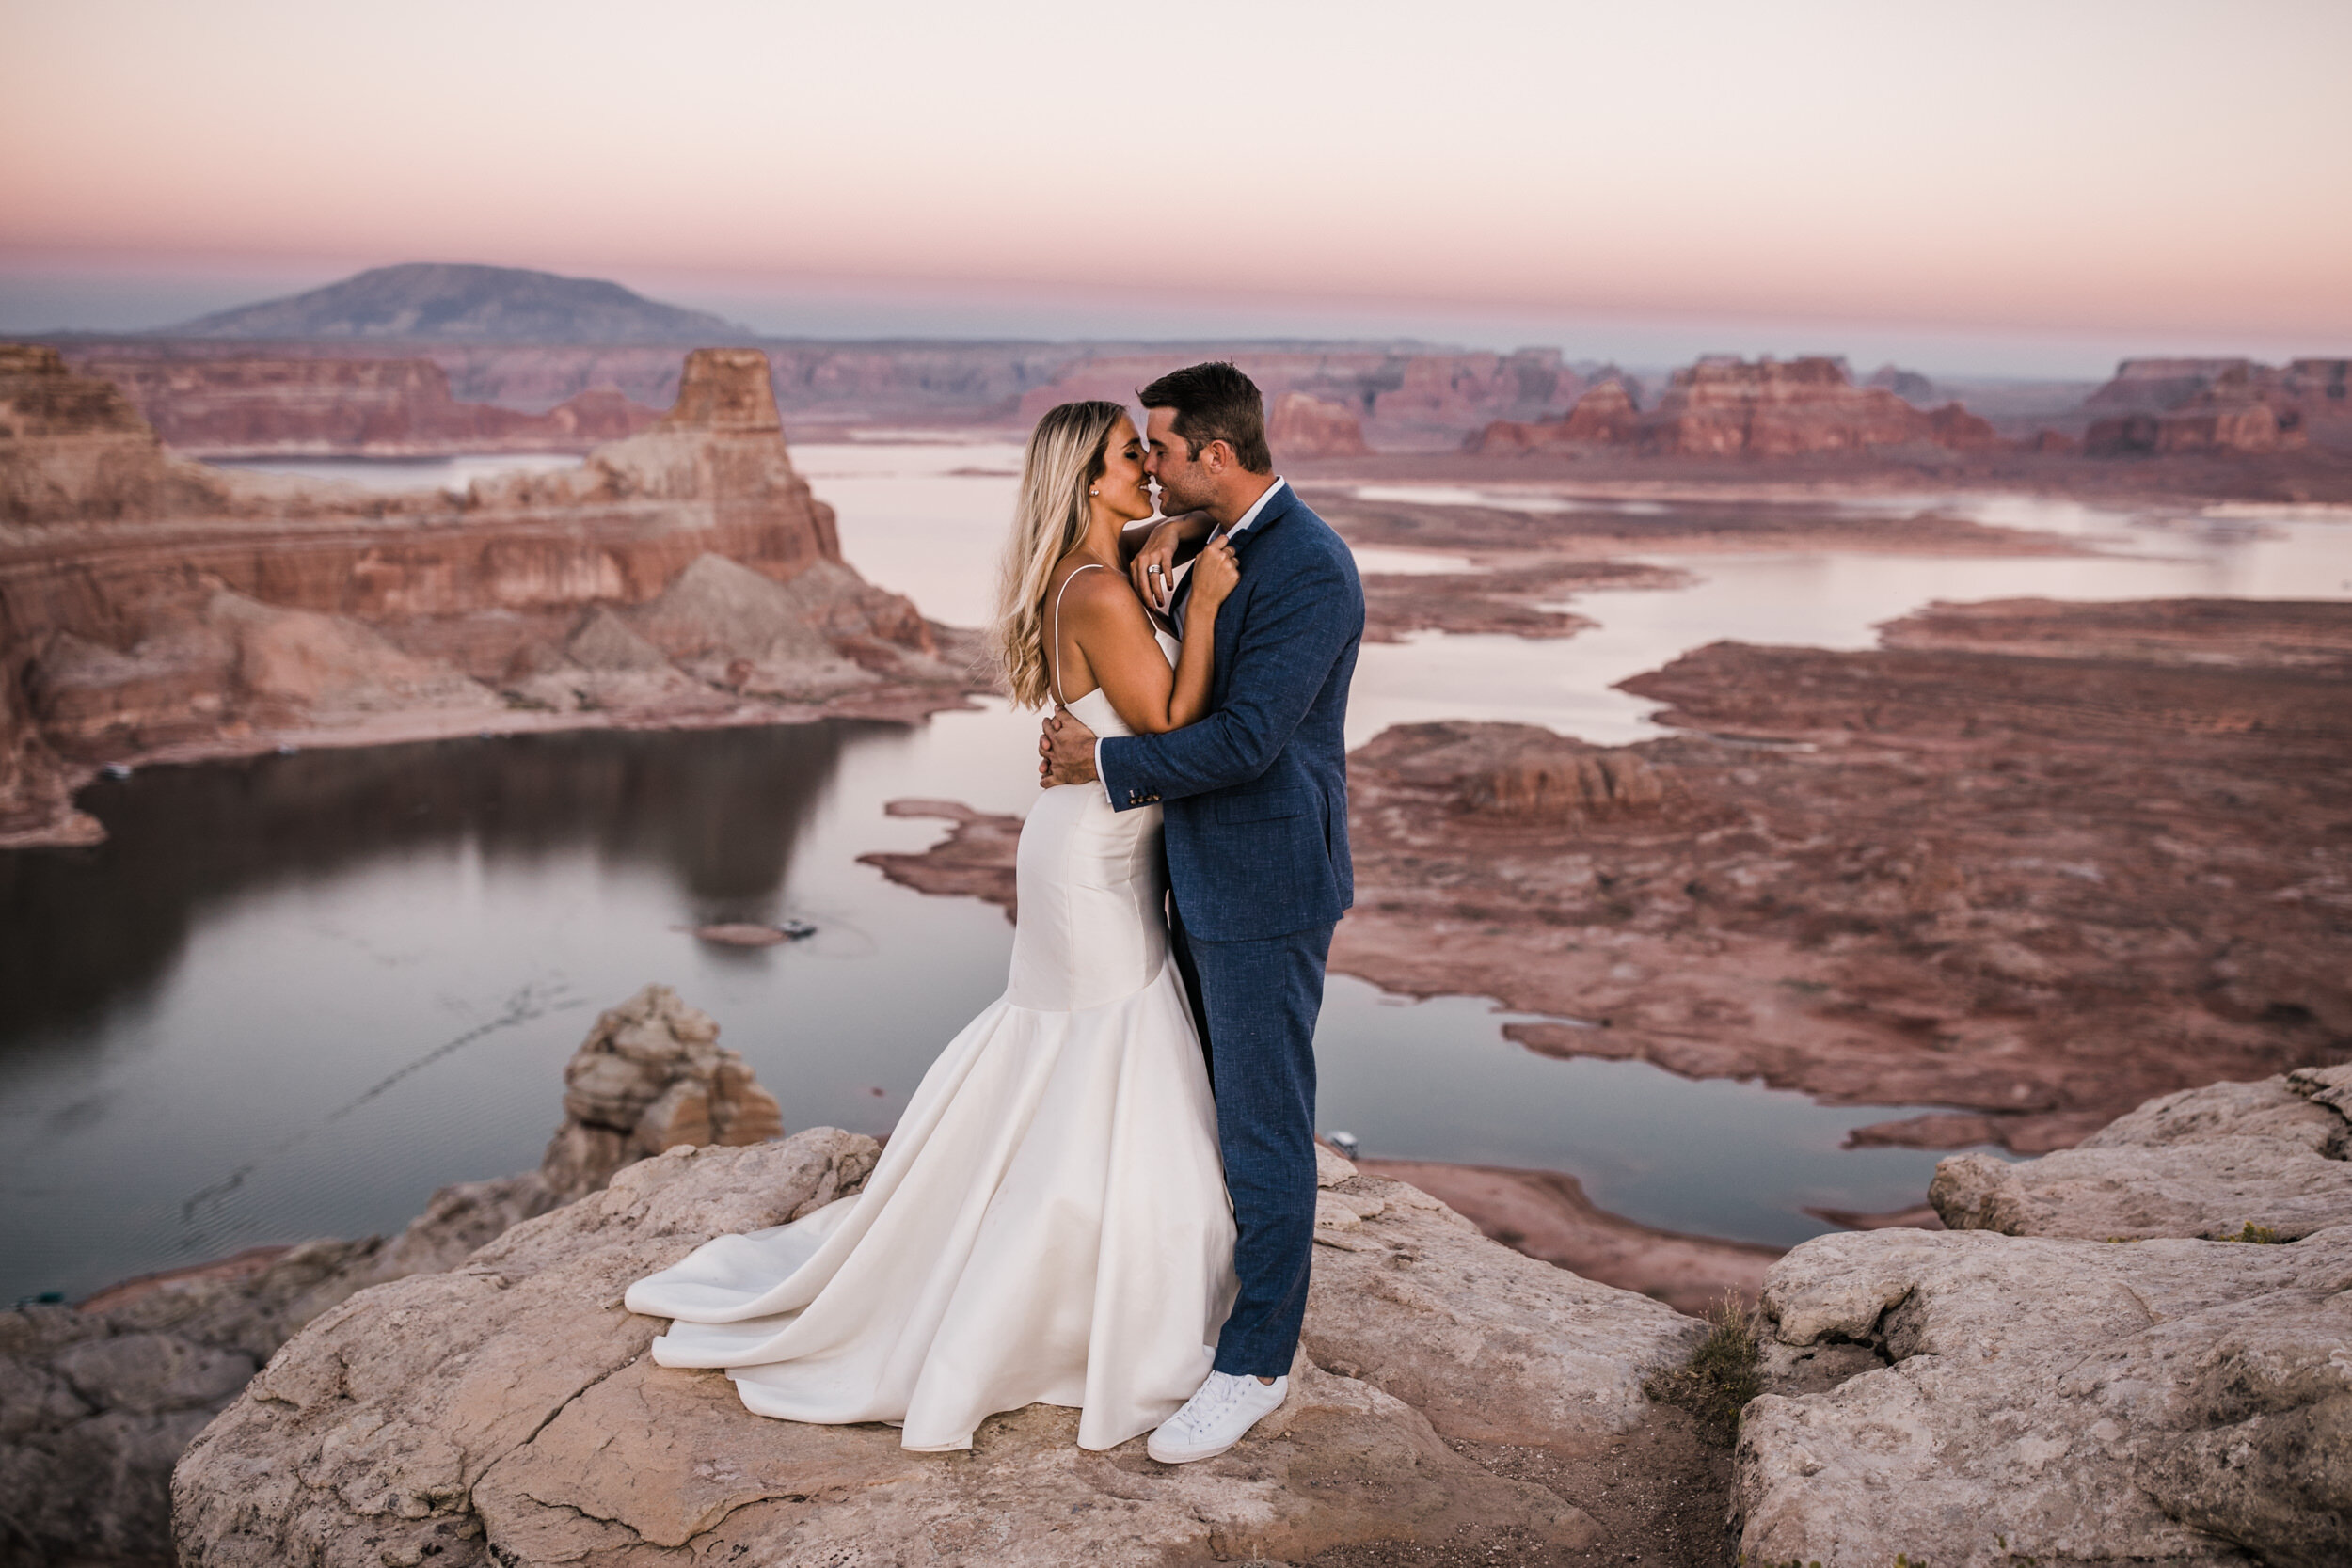 Pricing Packages For Adventure Elopement Photography Weddings And Engagement Sessions Adventure Wedding Elopement Photographers In Moab Yosemite And Beyond The Hearnes